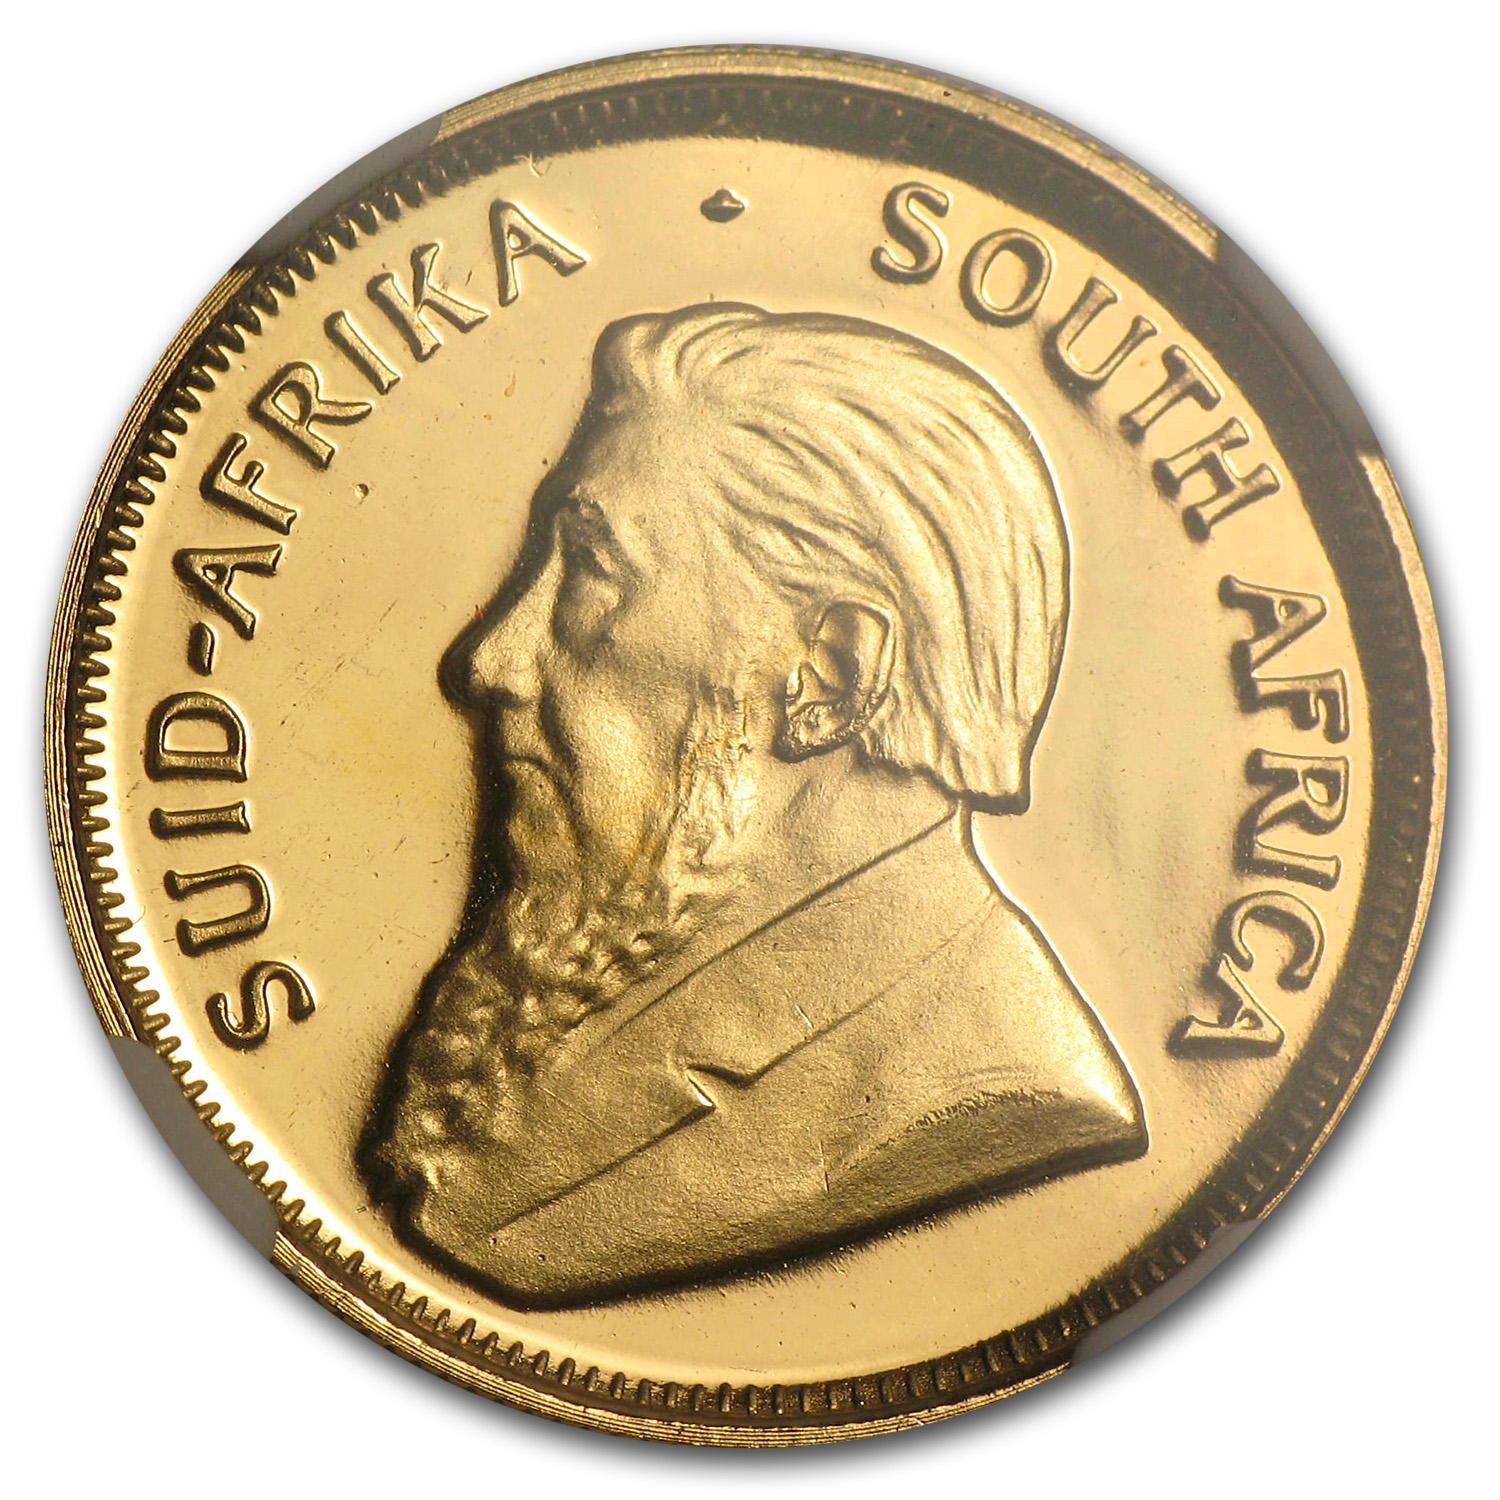 1988 South Africa 1/4 oz Gold Krugerrand PF-68 NGC (GRC)